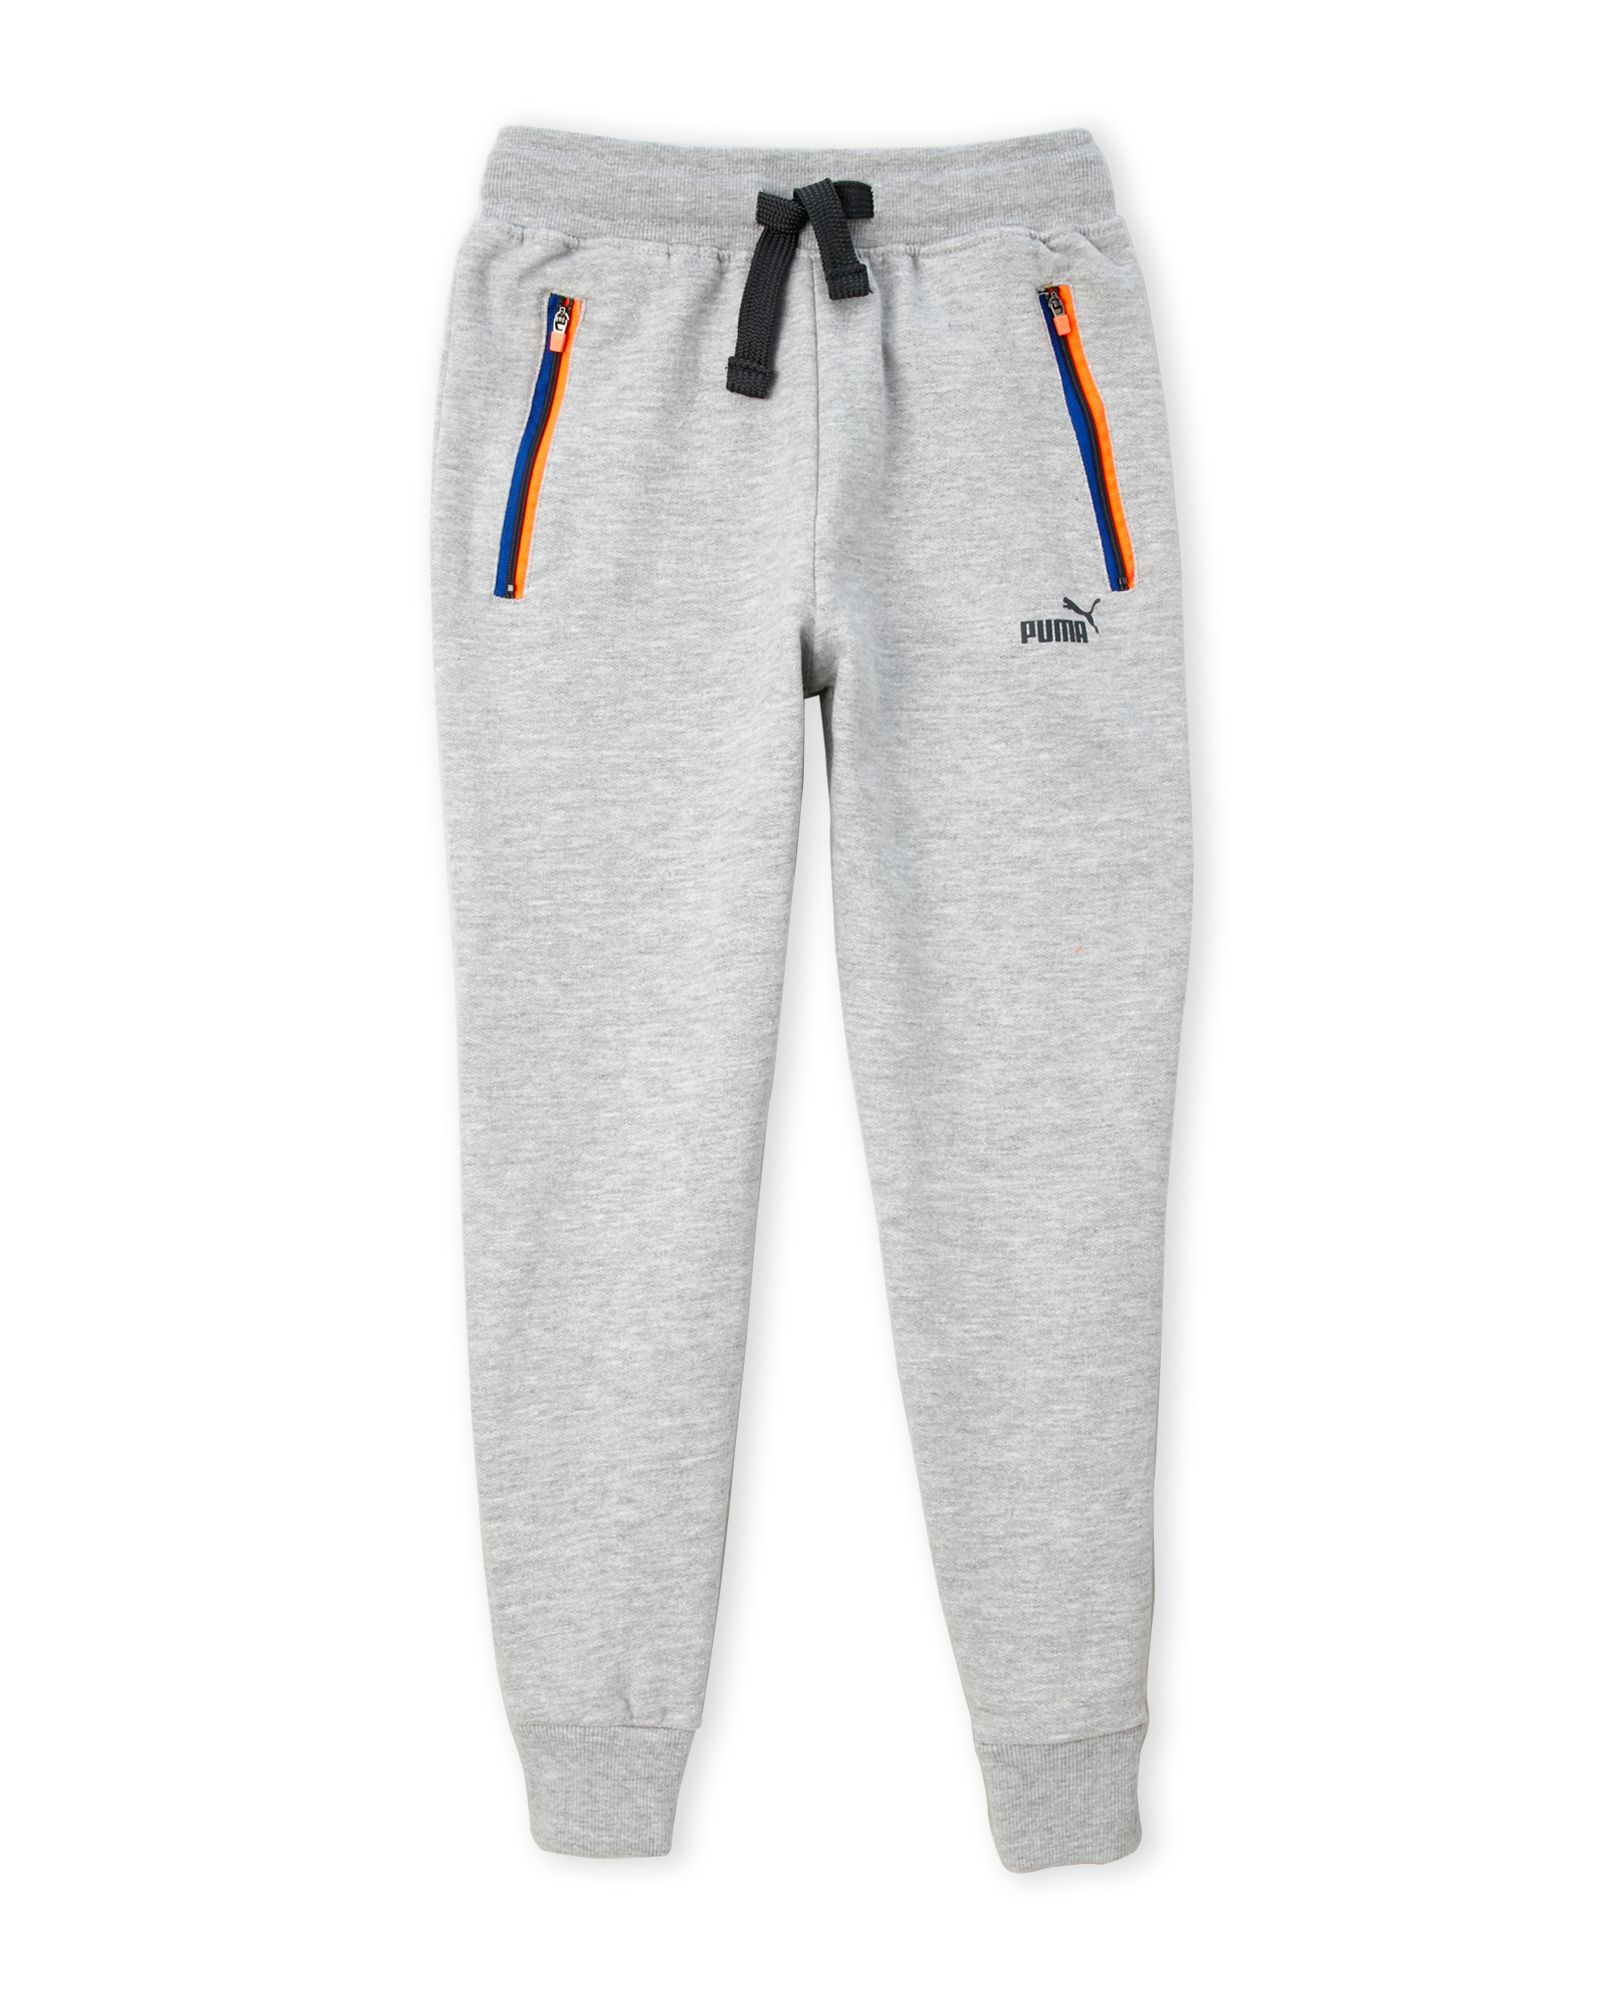 5a212bac312d Puma (Boys 8-20) Fleece Lined Jogger Pants